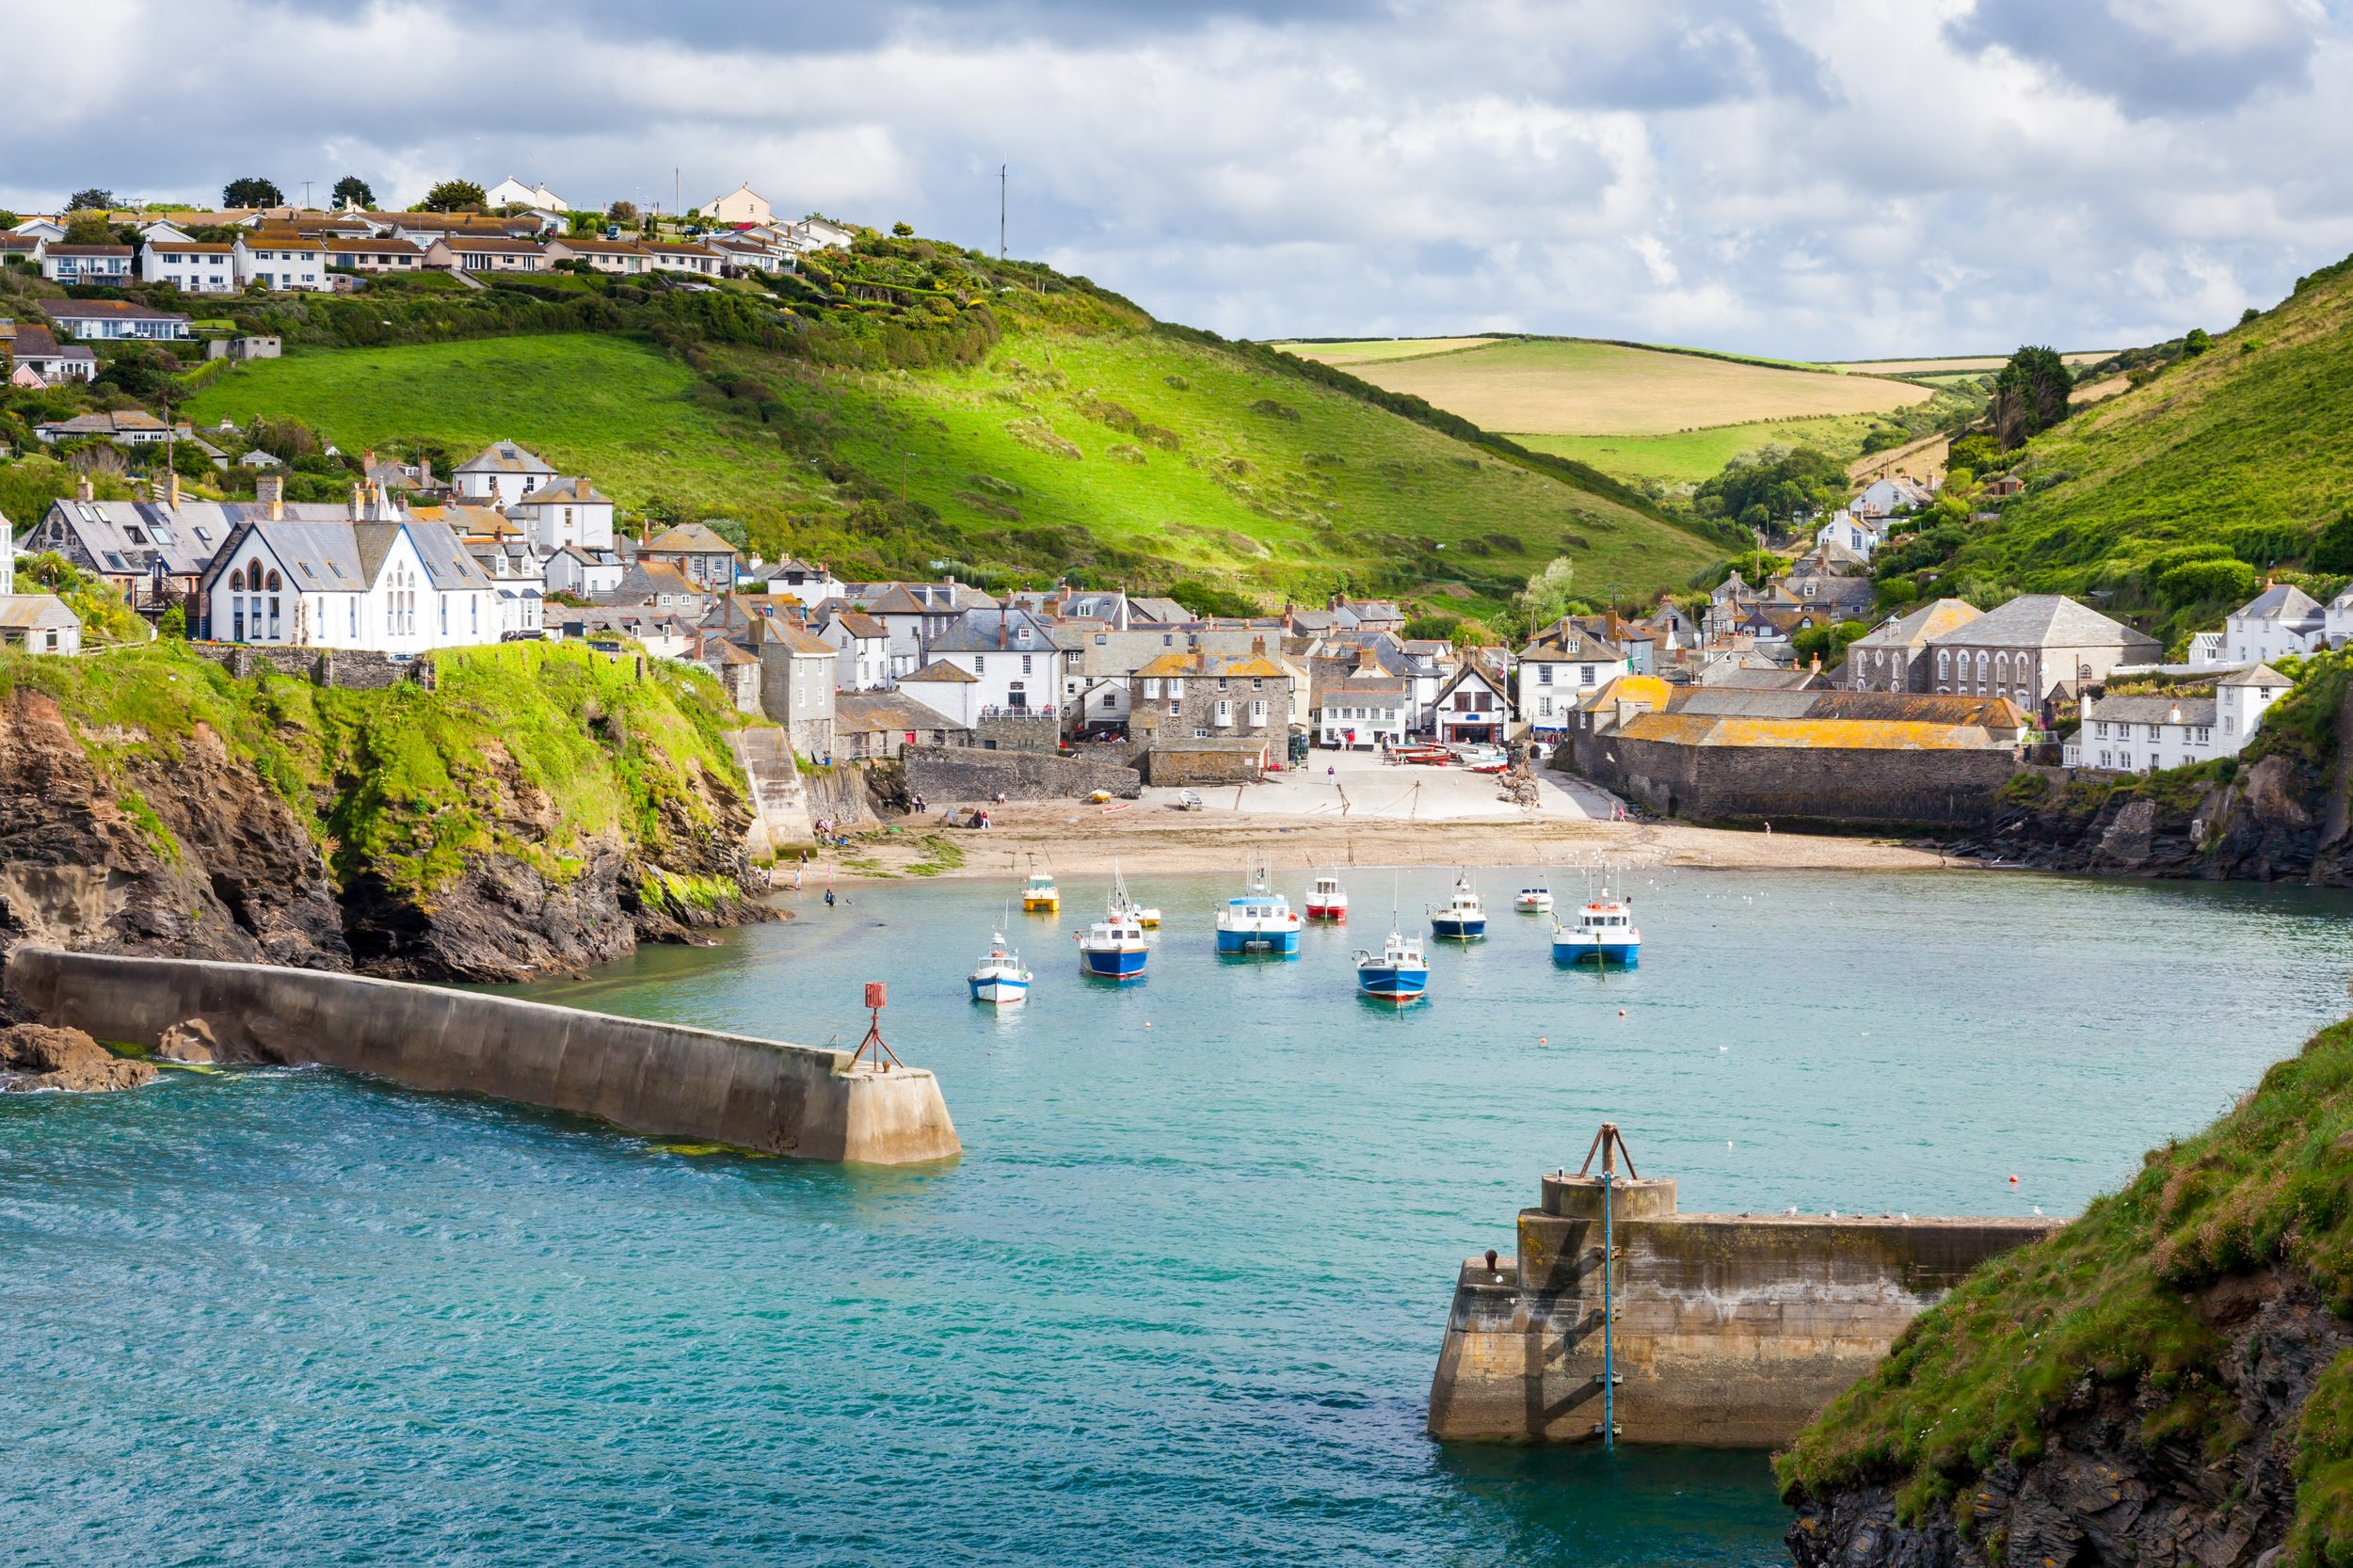 Our Home! - Port Isaac is a small and picturesque fishing village on the Atlantic coast of north Cornwall, England, United Kingdom.